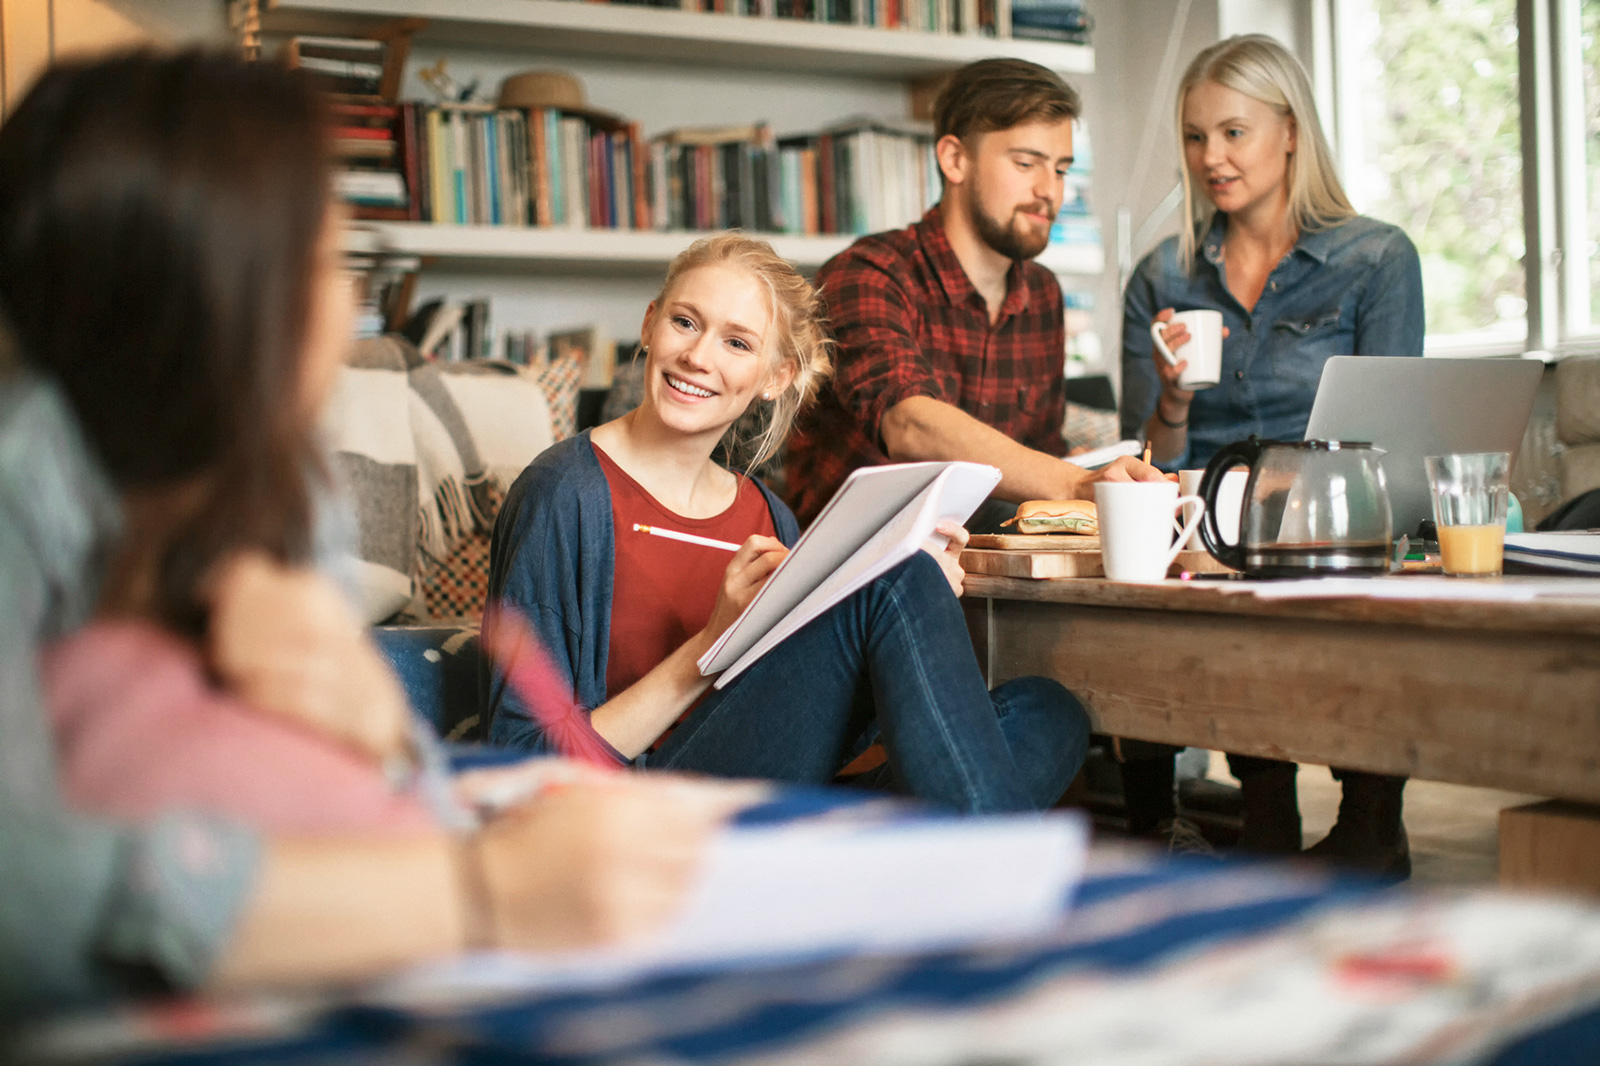 Students should pay their rent and not be treated differently to others tenants, say landlords - https://roomslocal.co.uk/blog/students-should-pay-their-rent-and-not-be-treated-differently-to-others-tenants-say-landlords #should #their #rent #treated #differently